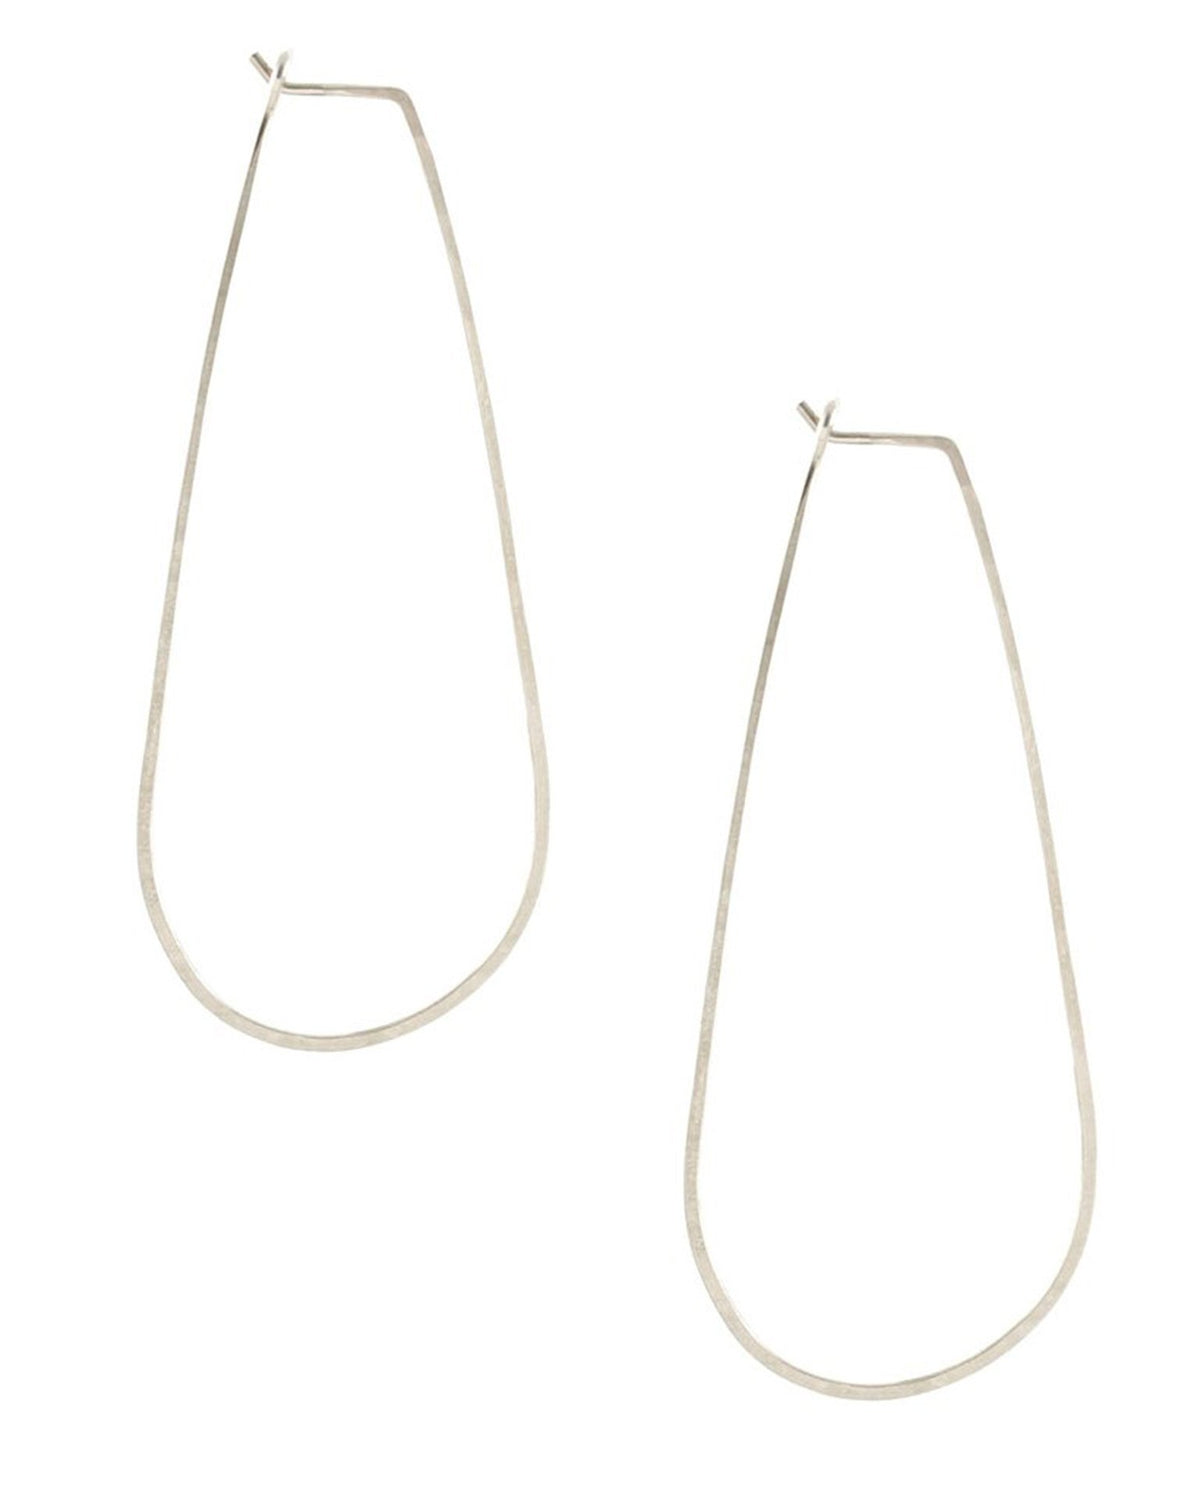 Kris Nations Jewelry Silver / O/S Long Teardrop Earrings